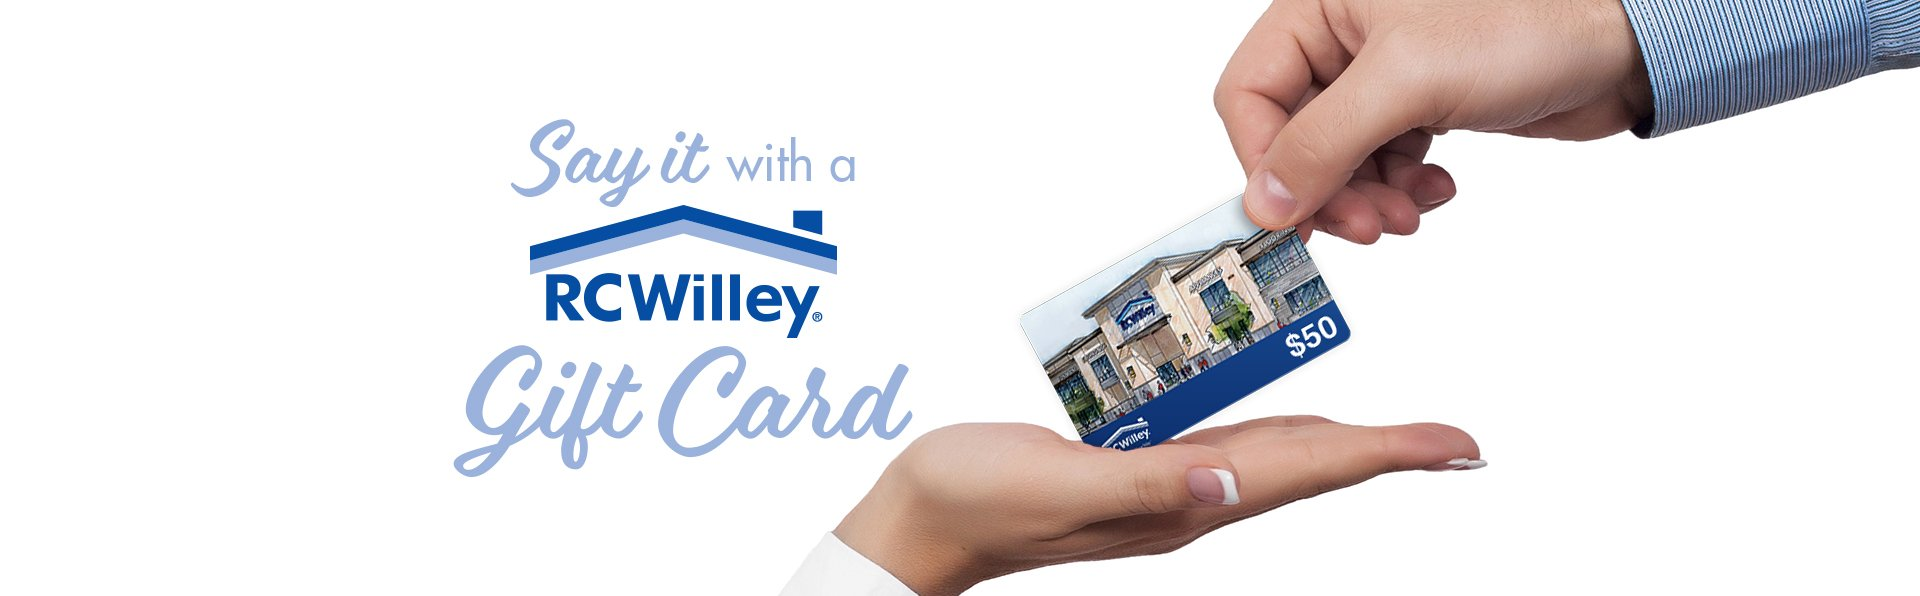 Say it with an RC Willey gift card